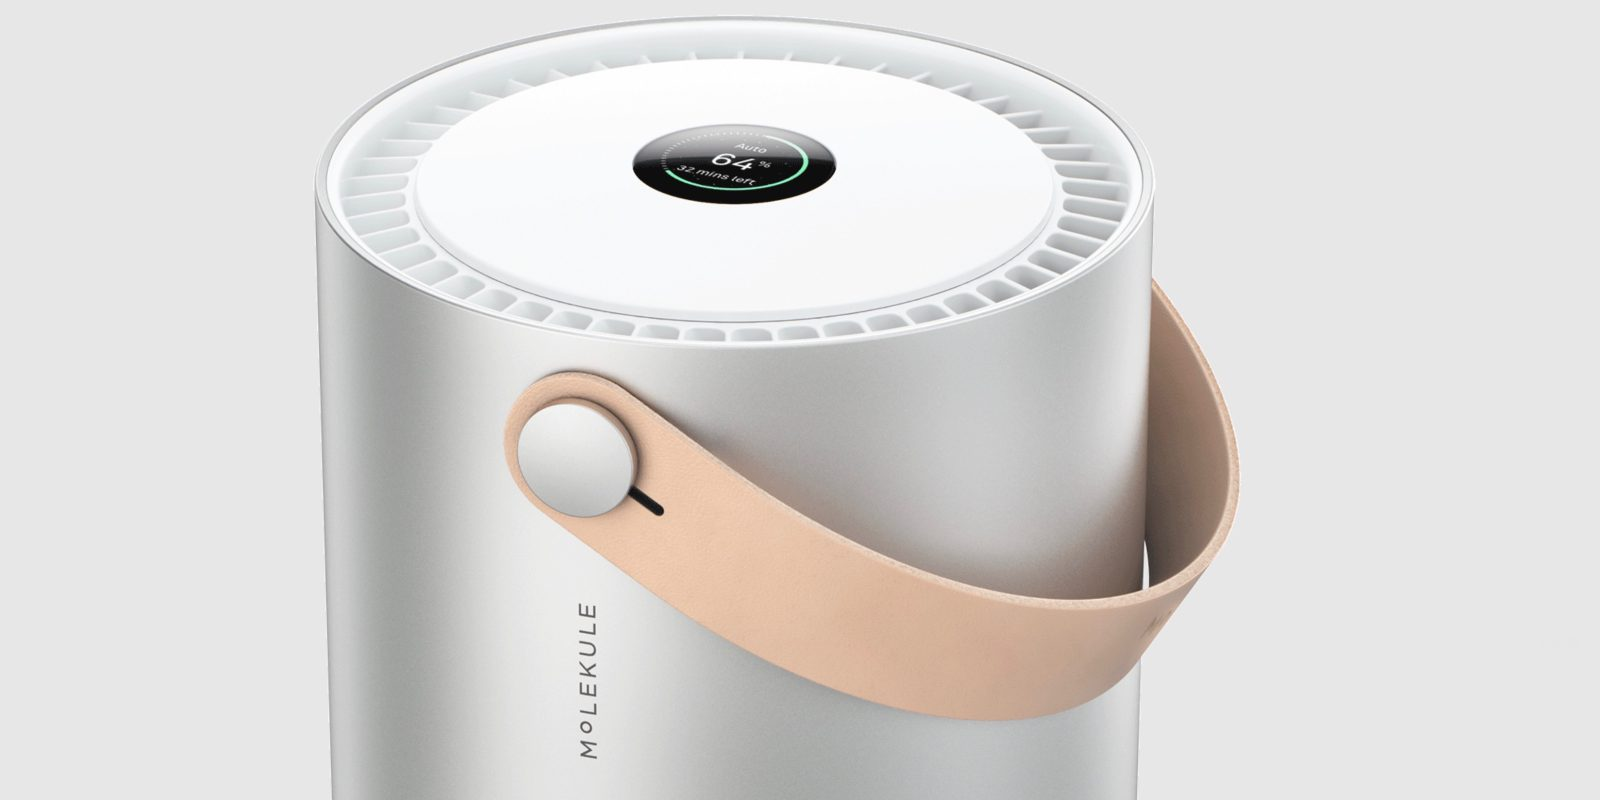 molekule1 - HomeKit support for Molekule Air Purifier said to be nearing public rollout